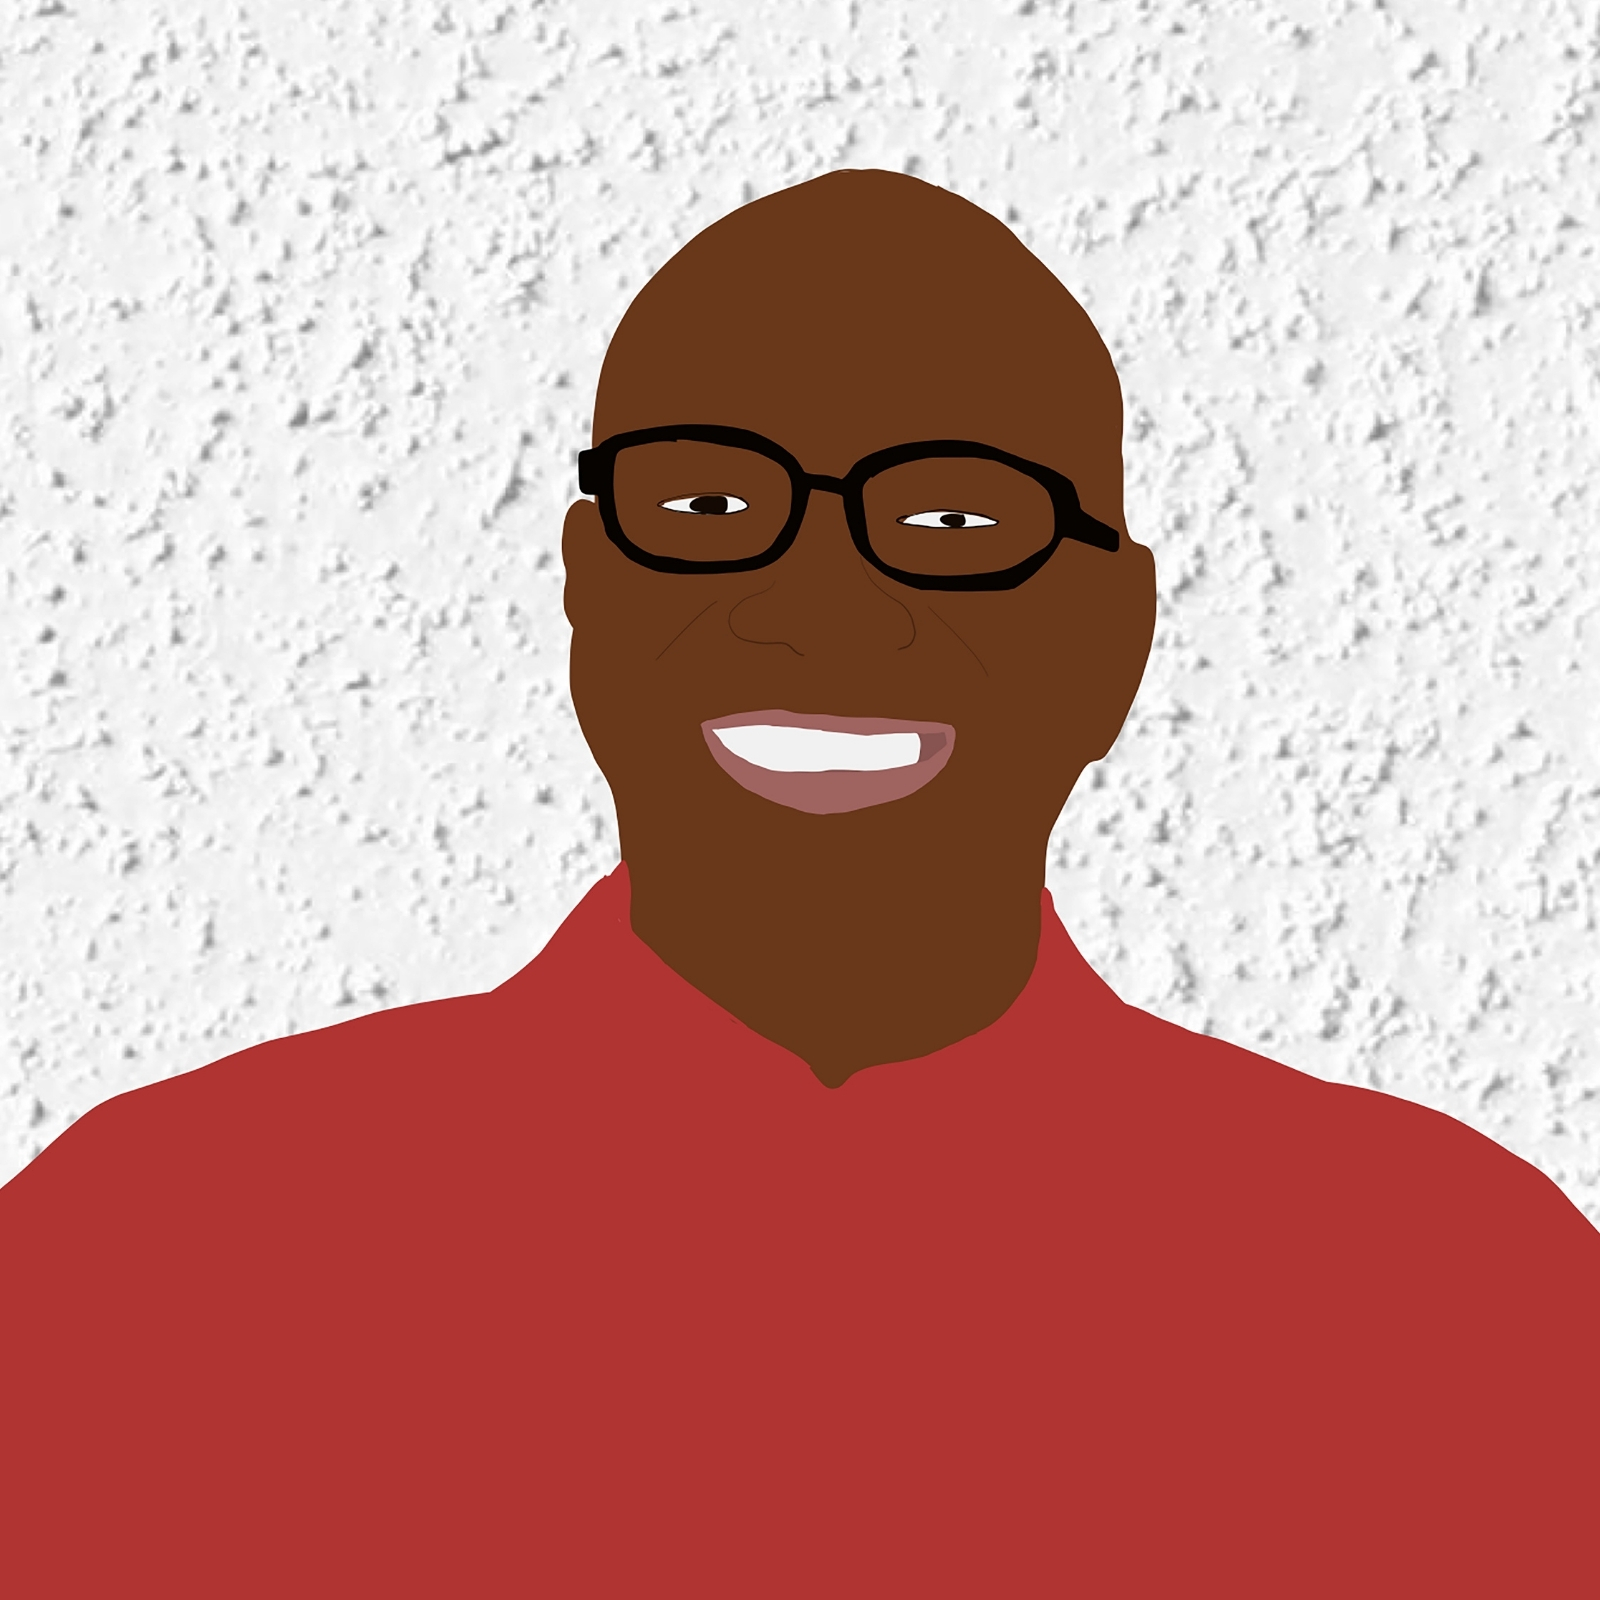 Digital illustration of Earl smiling against a white stucco background.